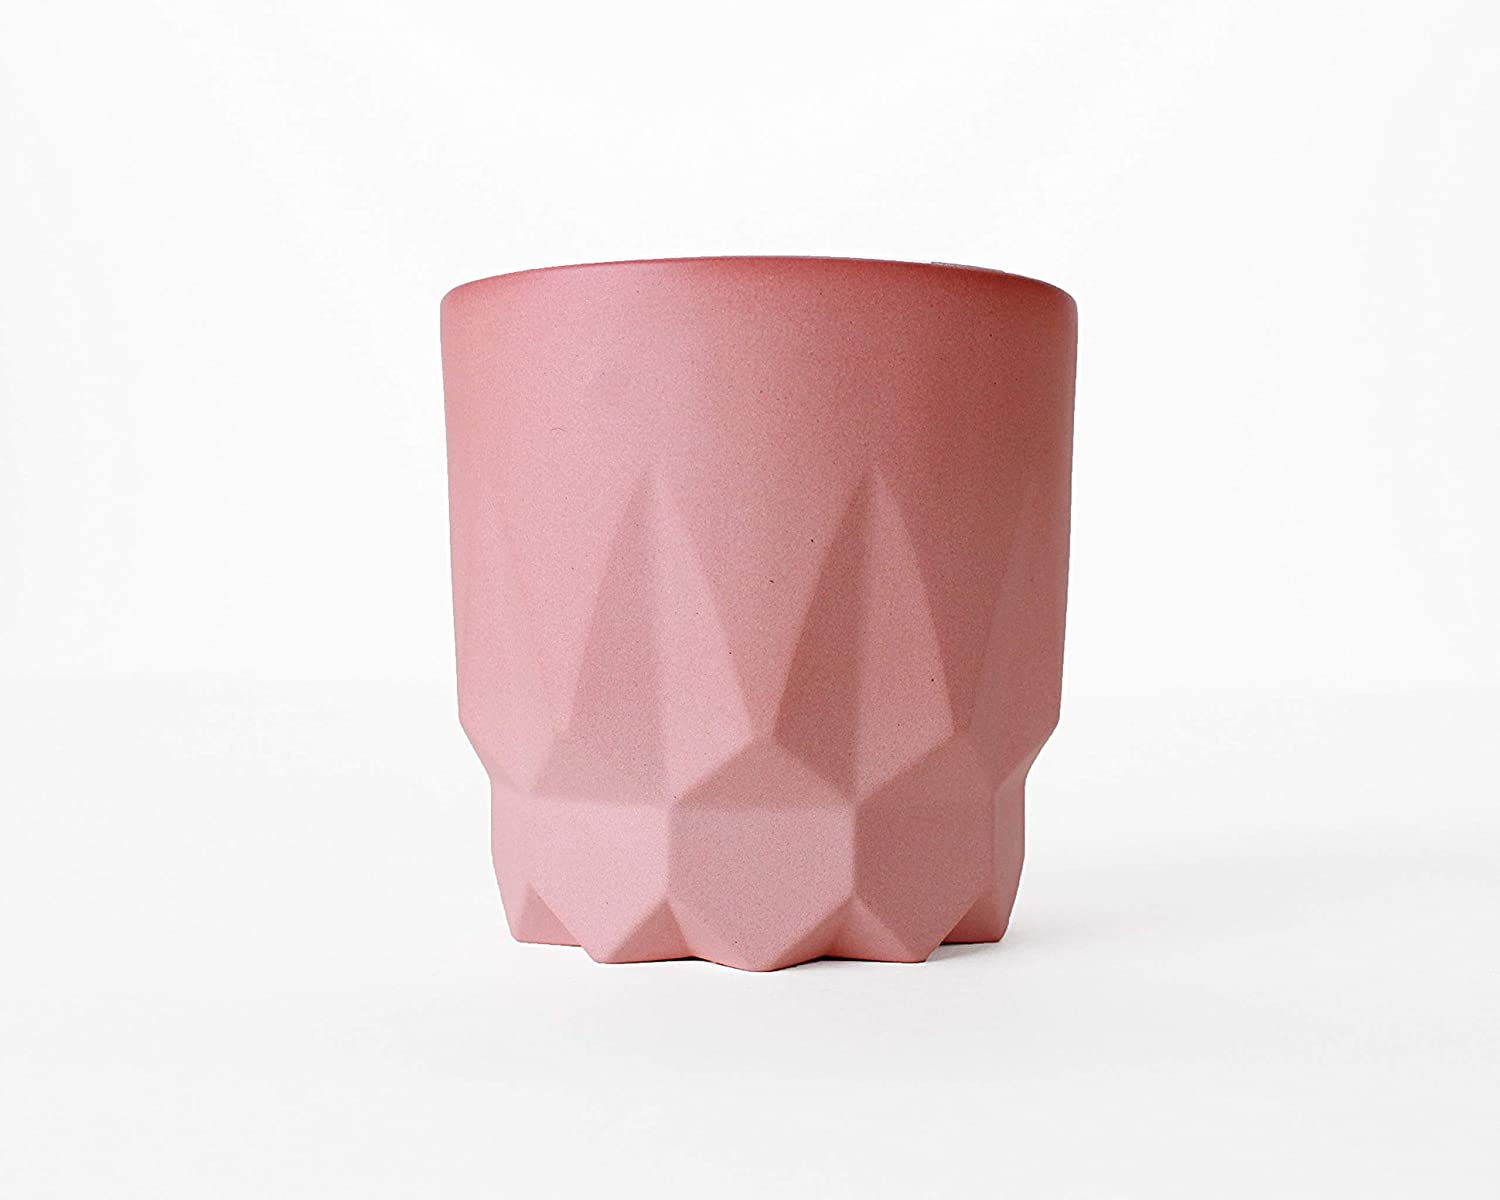 Amazon.com: Faceted Cup No. 8 (Rose): Handmade